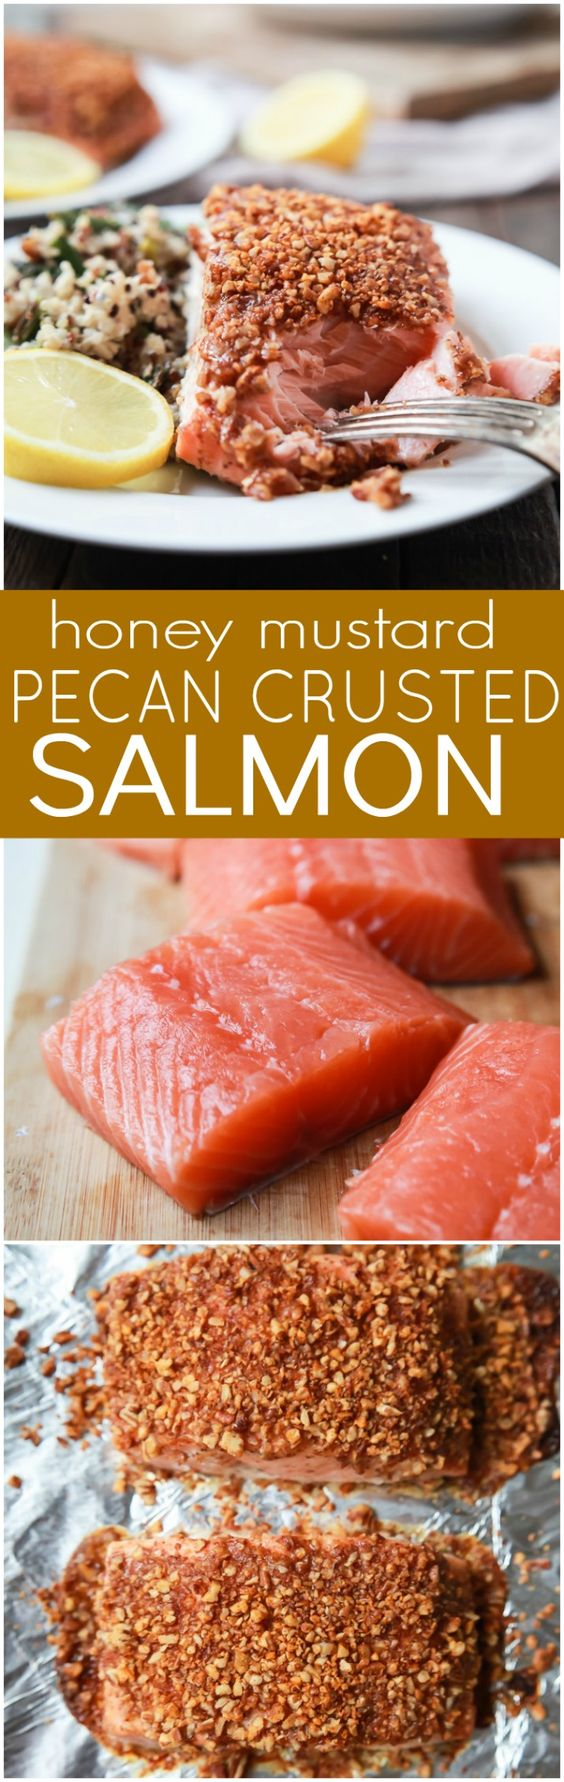 salmon recipes seafood paleo mustard 3 i pecan crusted salmon salmon ...